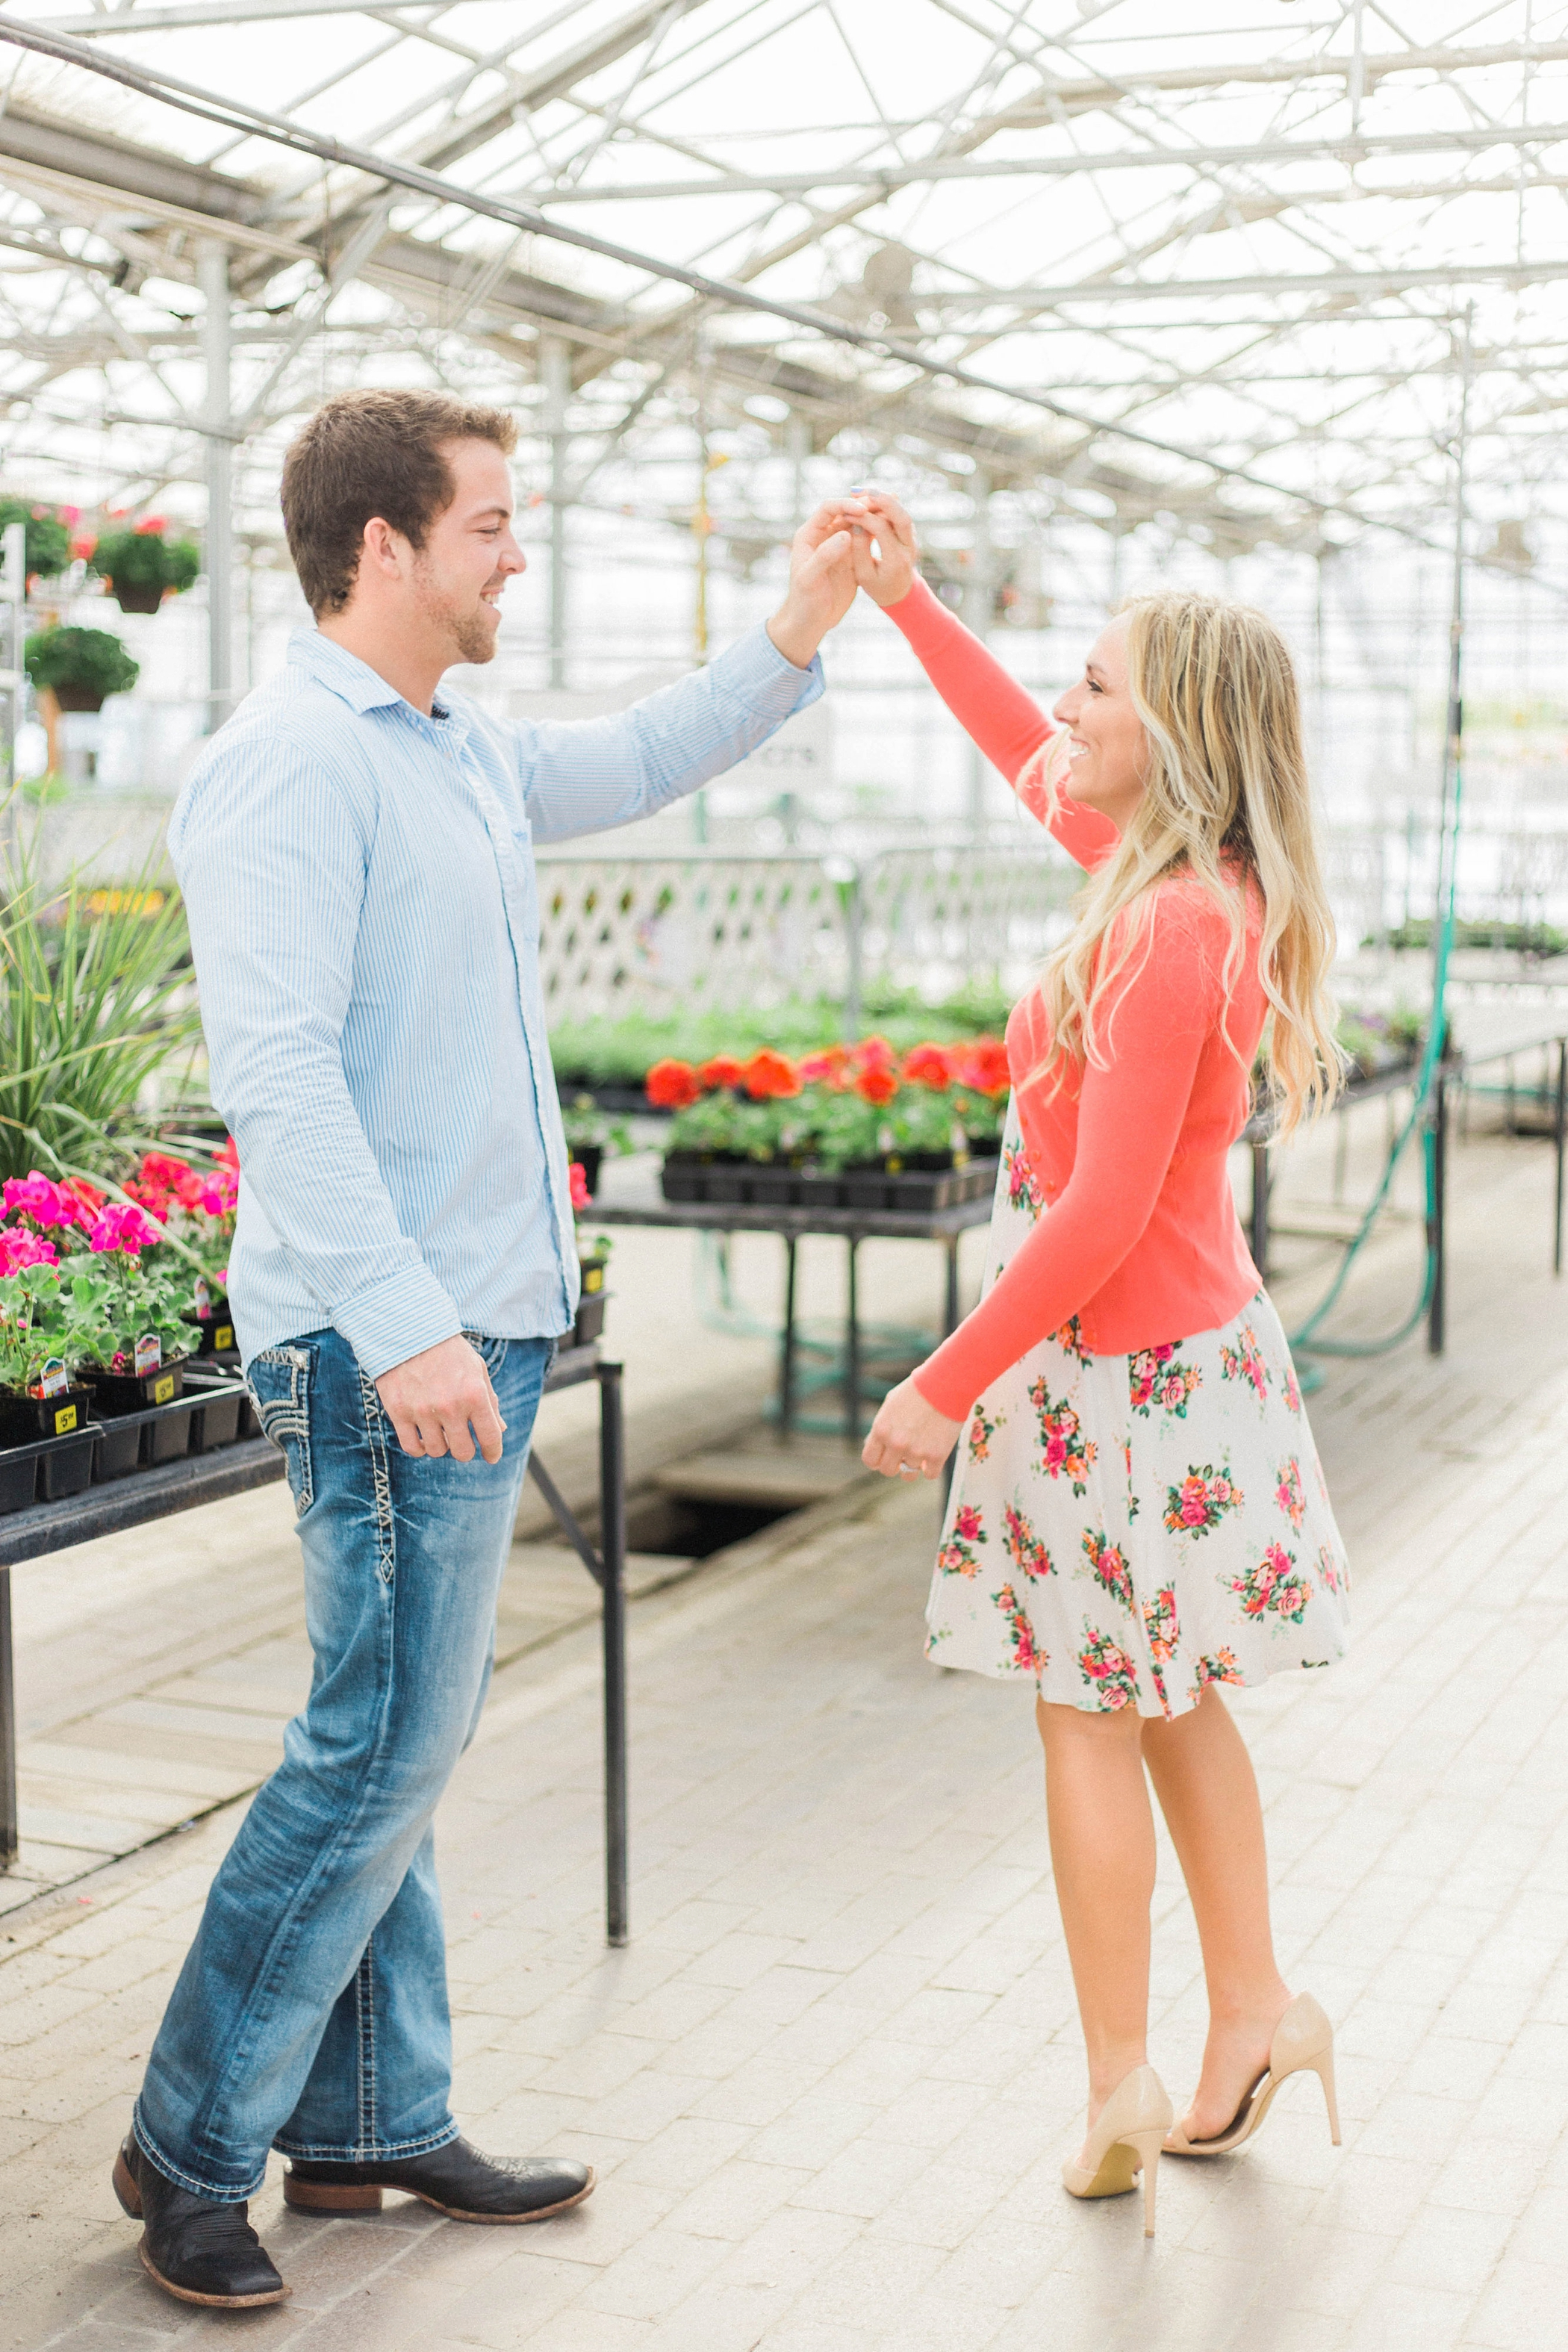 Idaho Greenhouse Engagements by Megan Lee Photo+Cinema